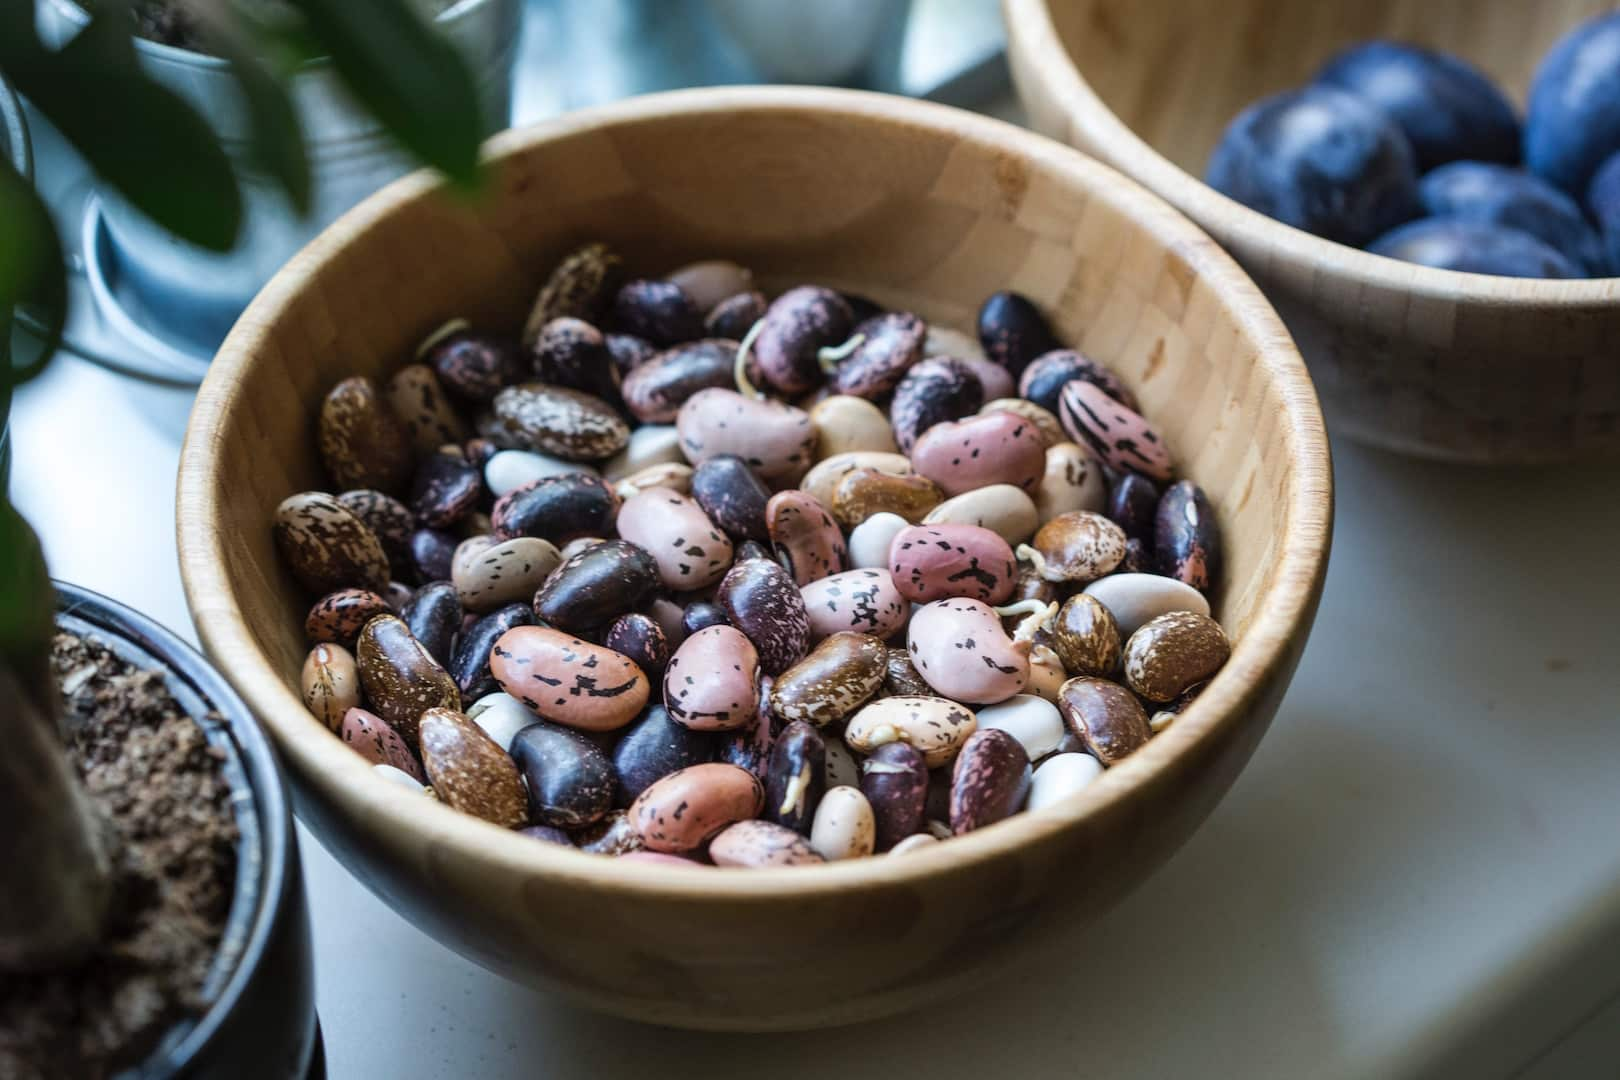 Foods for hypothyroidism - meats and legumes